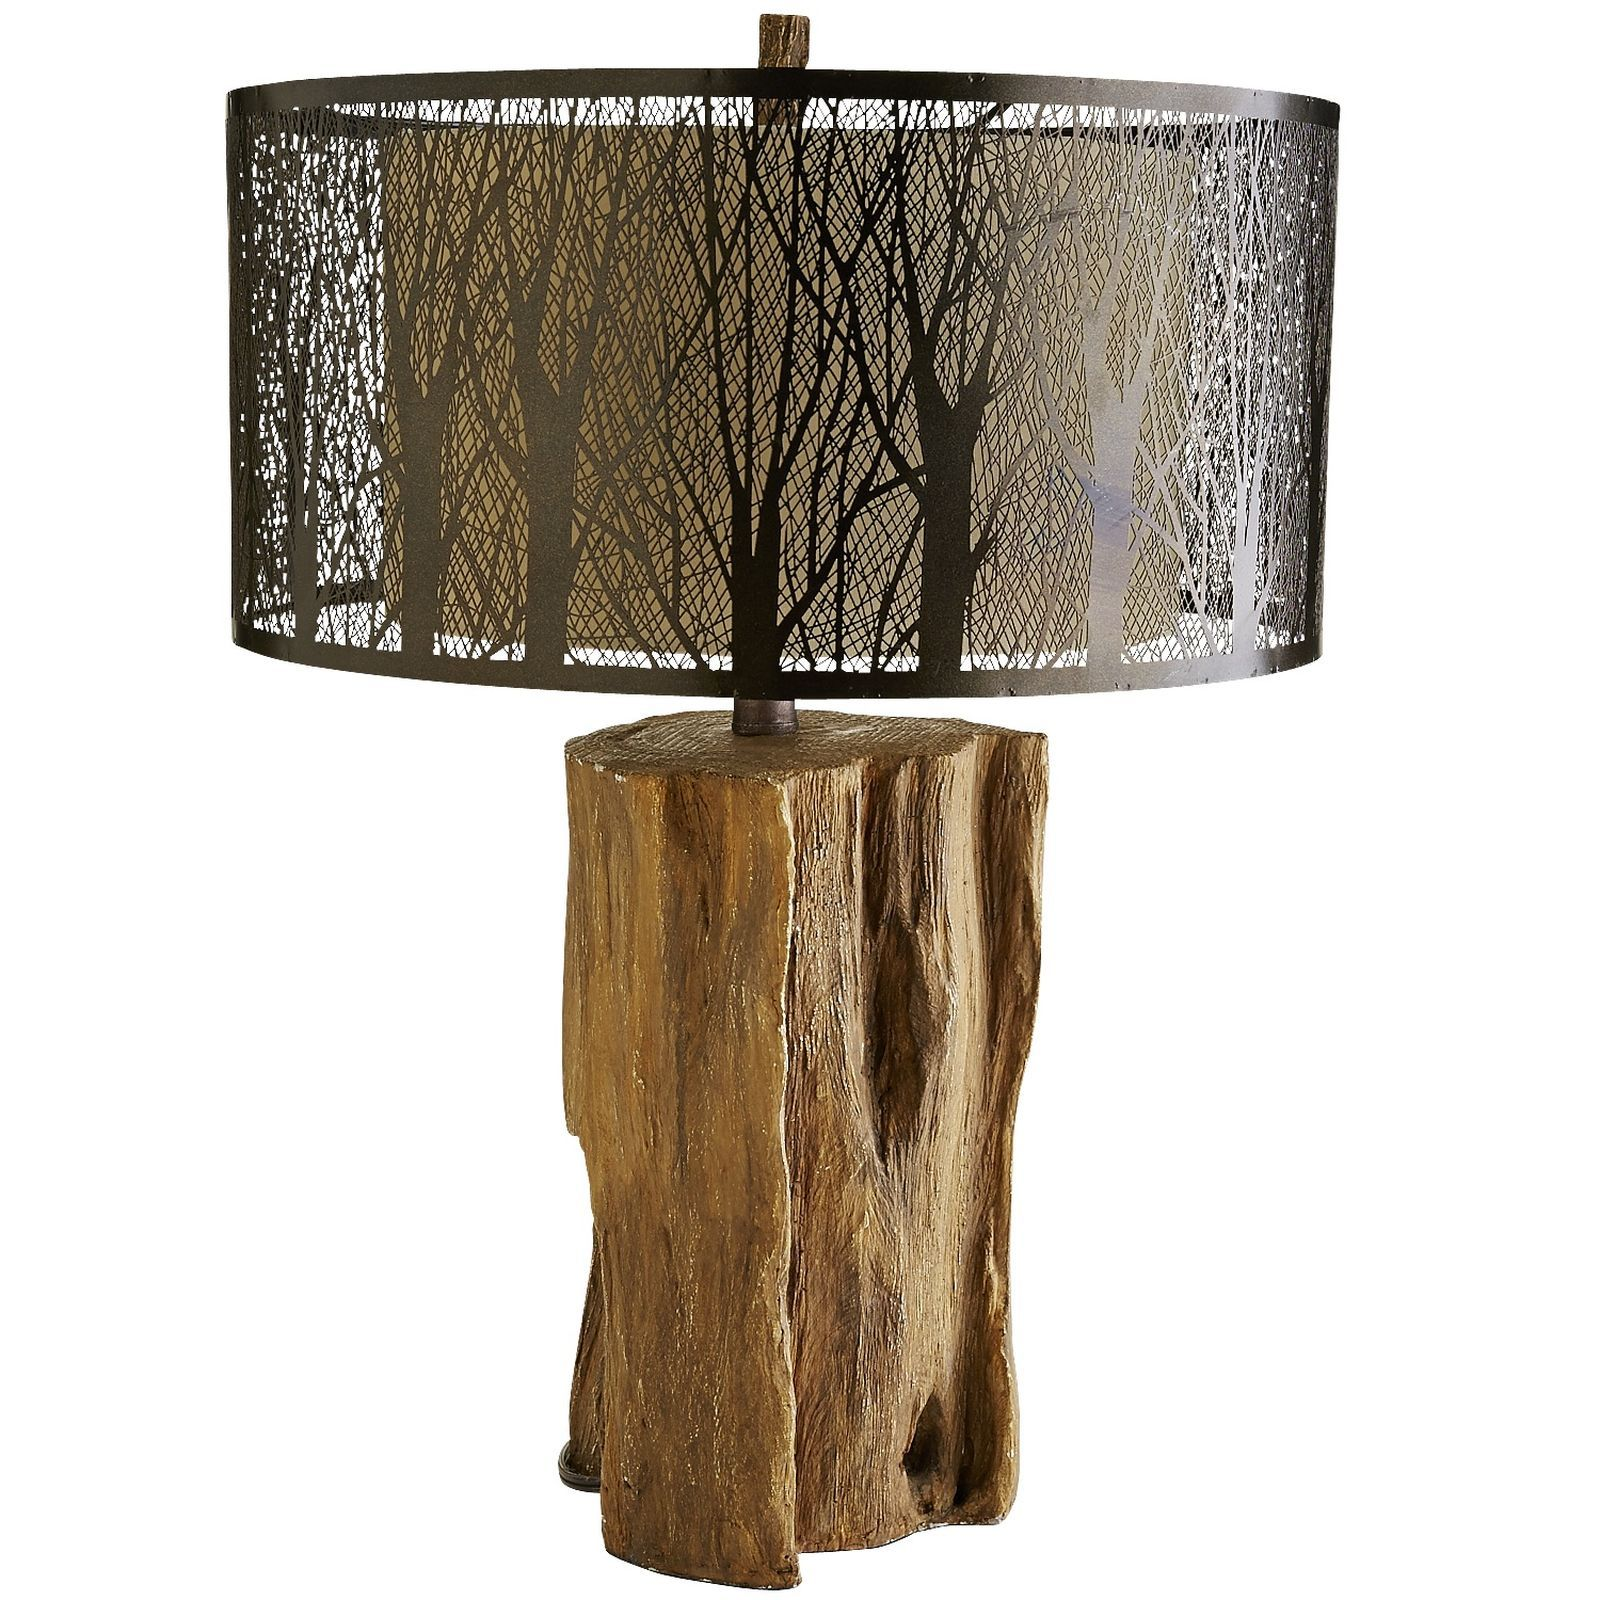 etched birches table lamp  tree trunks birch and serenity - etched birches table lamp